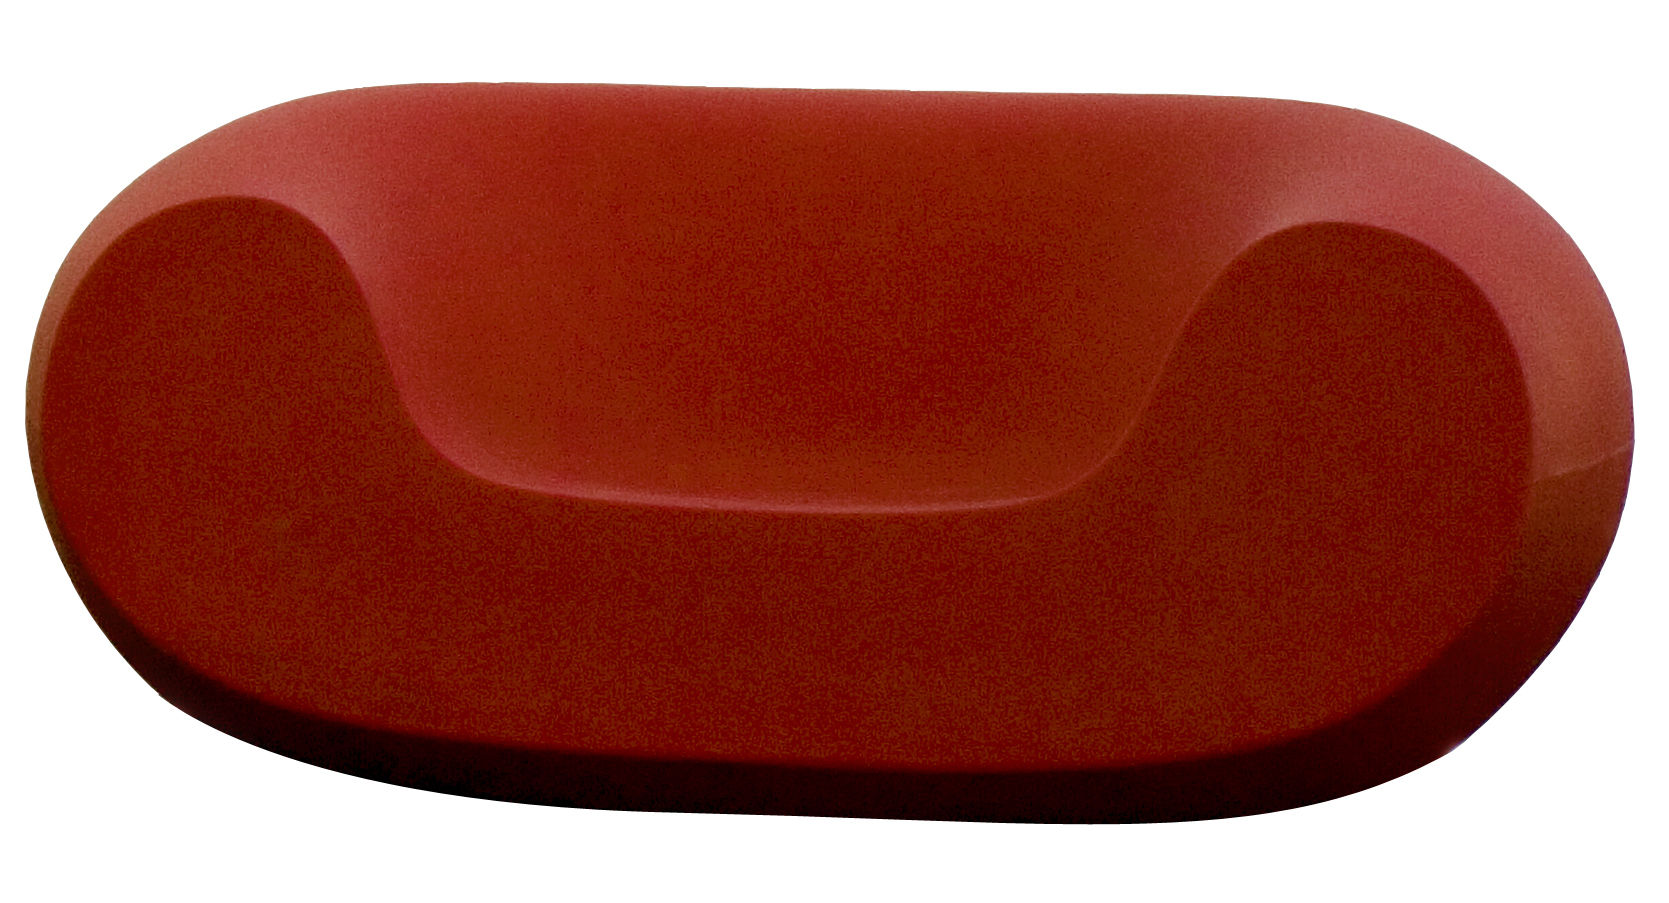 chubby lounge sessel rot by slide made in design. Black Bedroom Furniture Sets. Home Design Ideas